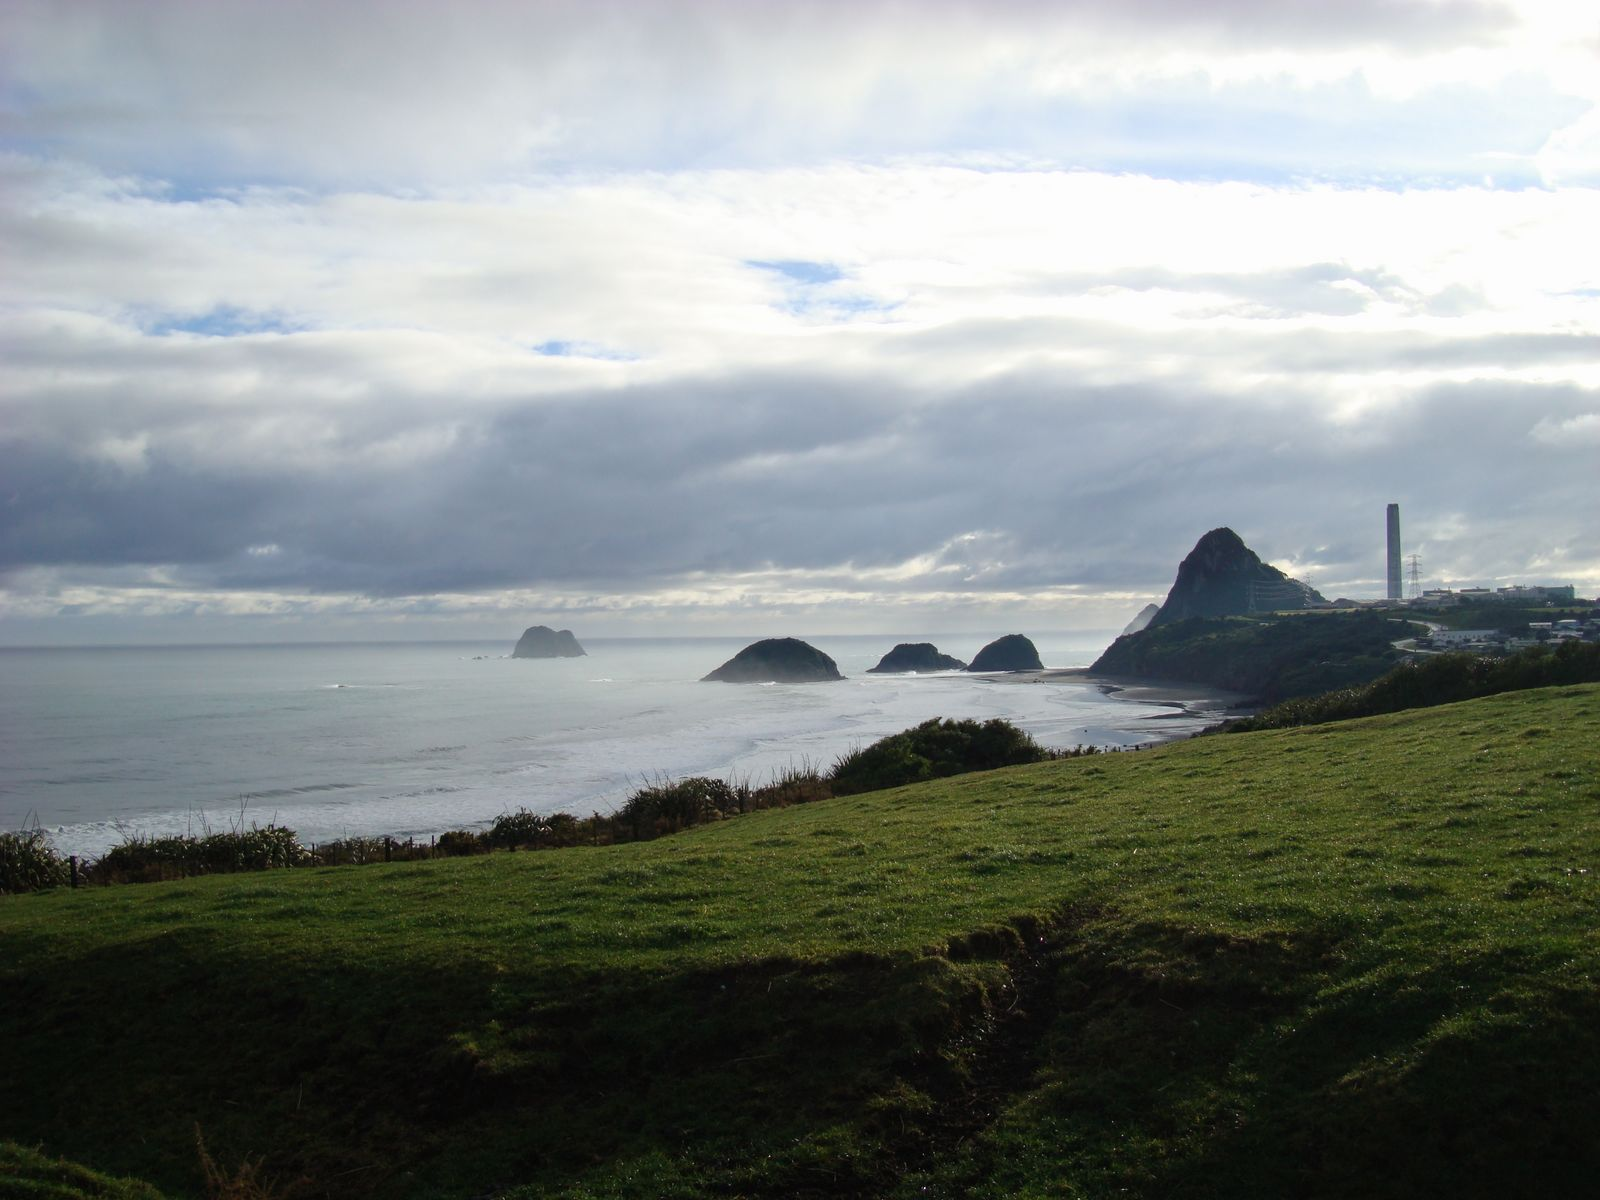 View from near Black Beach looking back towards New Plymouth port